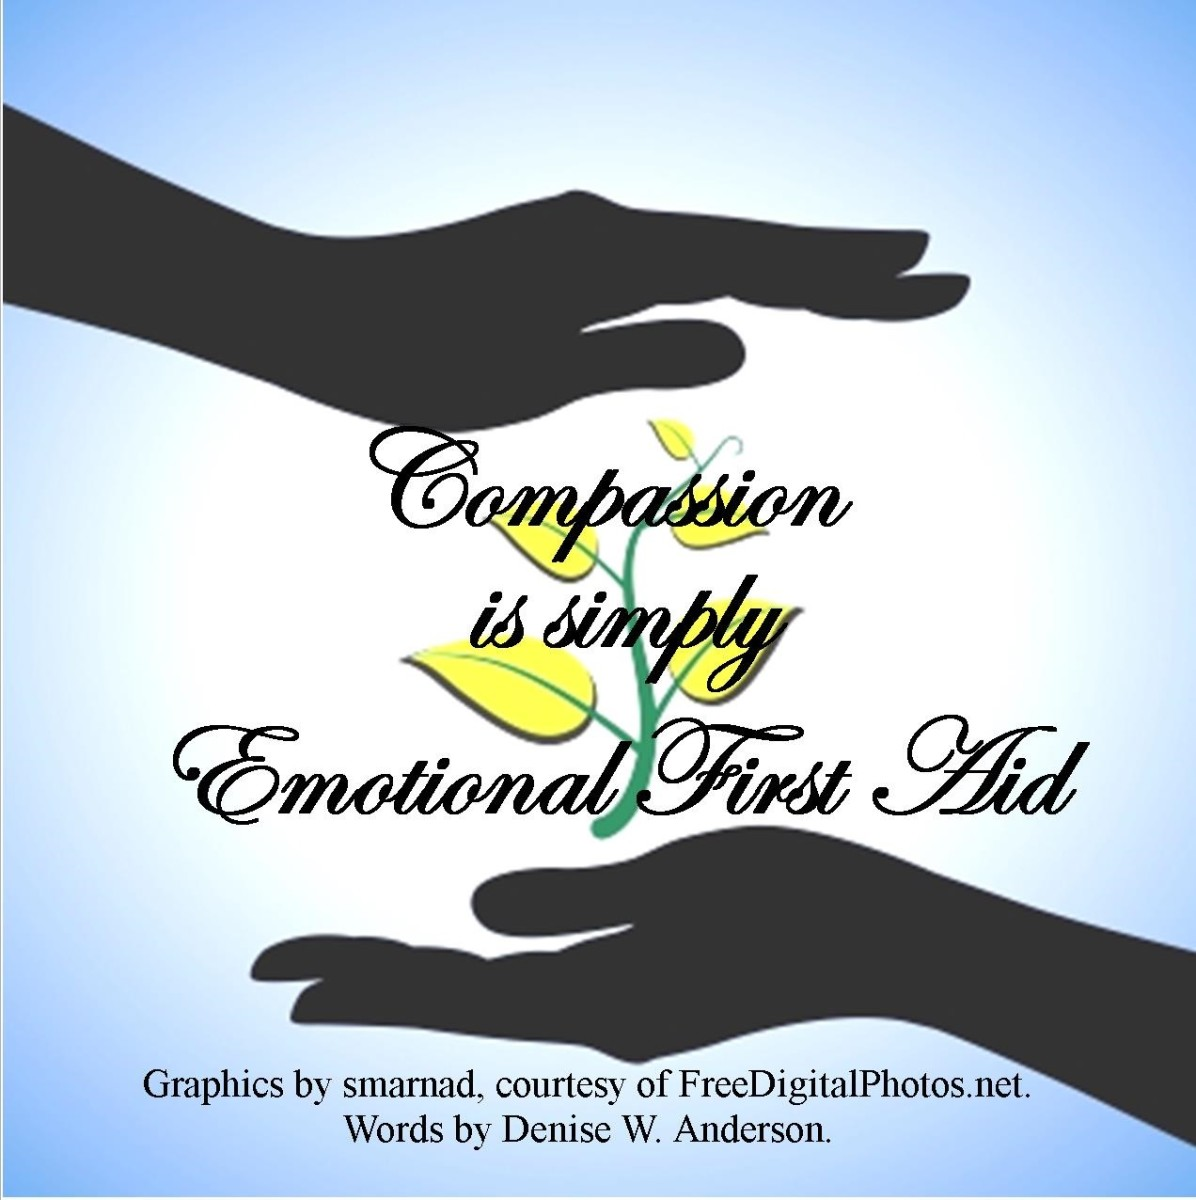 Providing Emotional First Aid